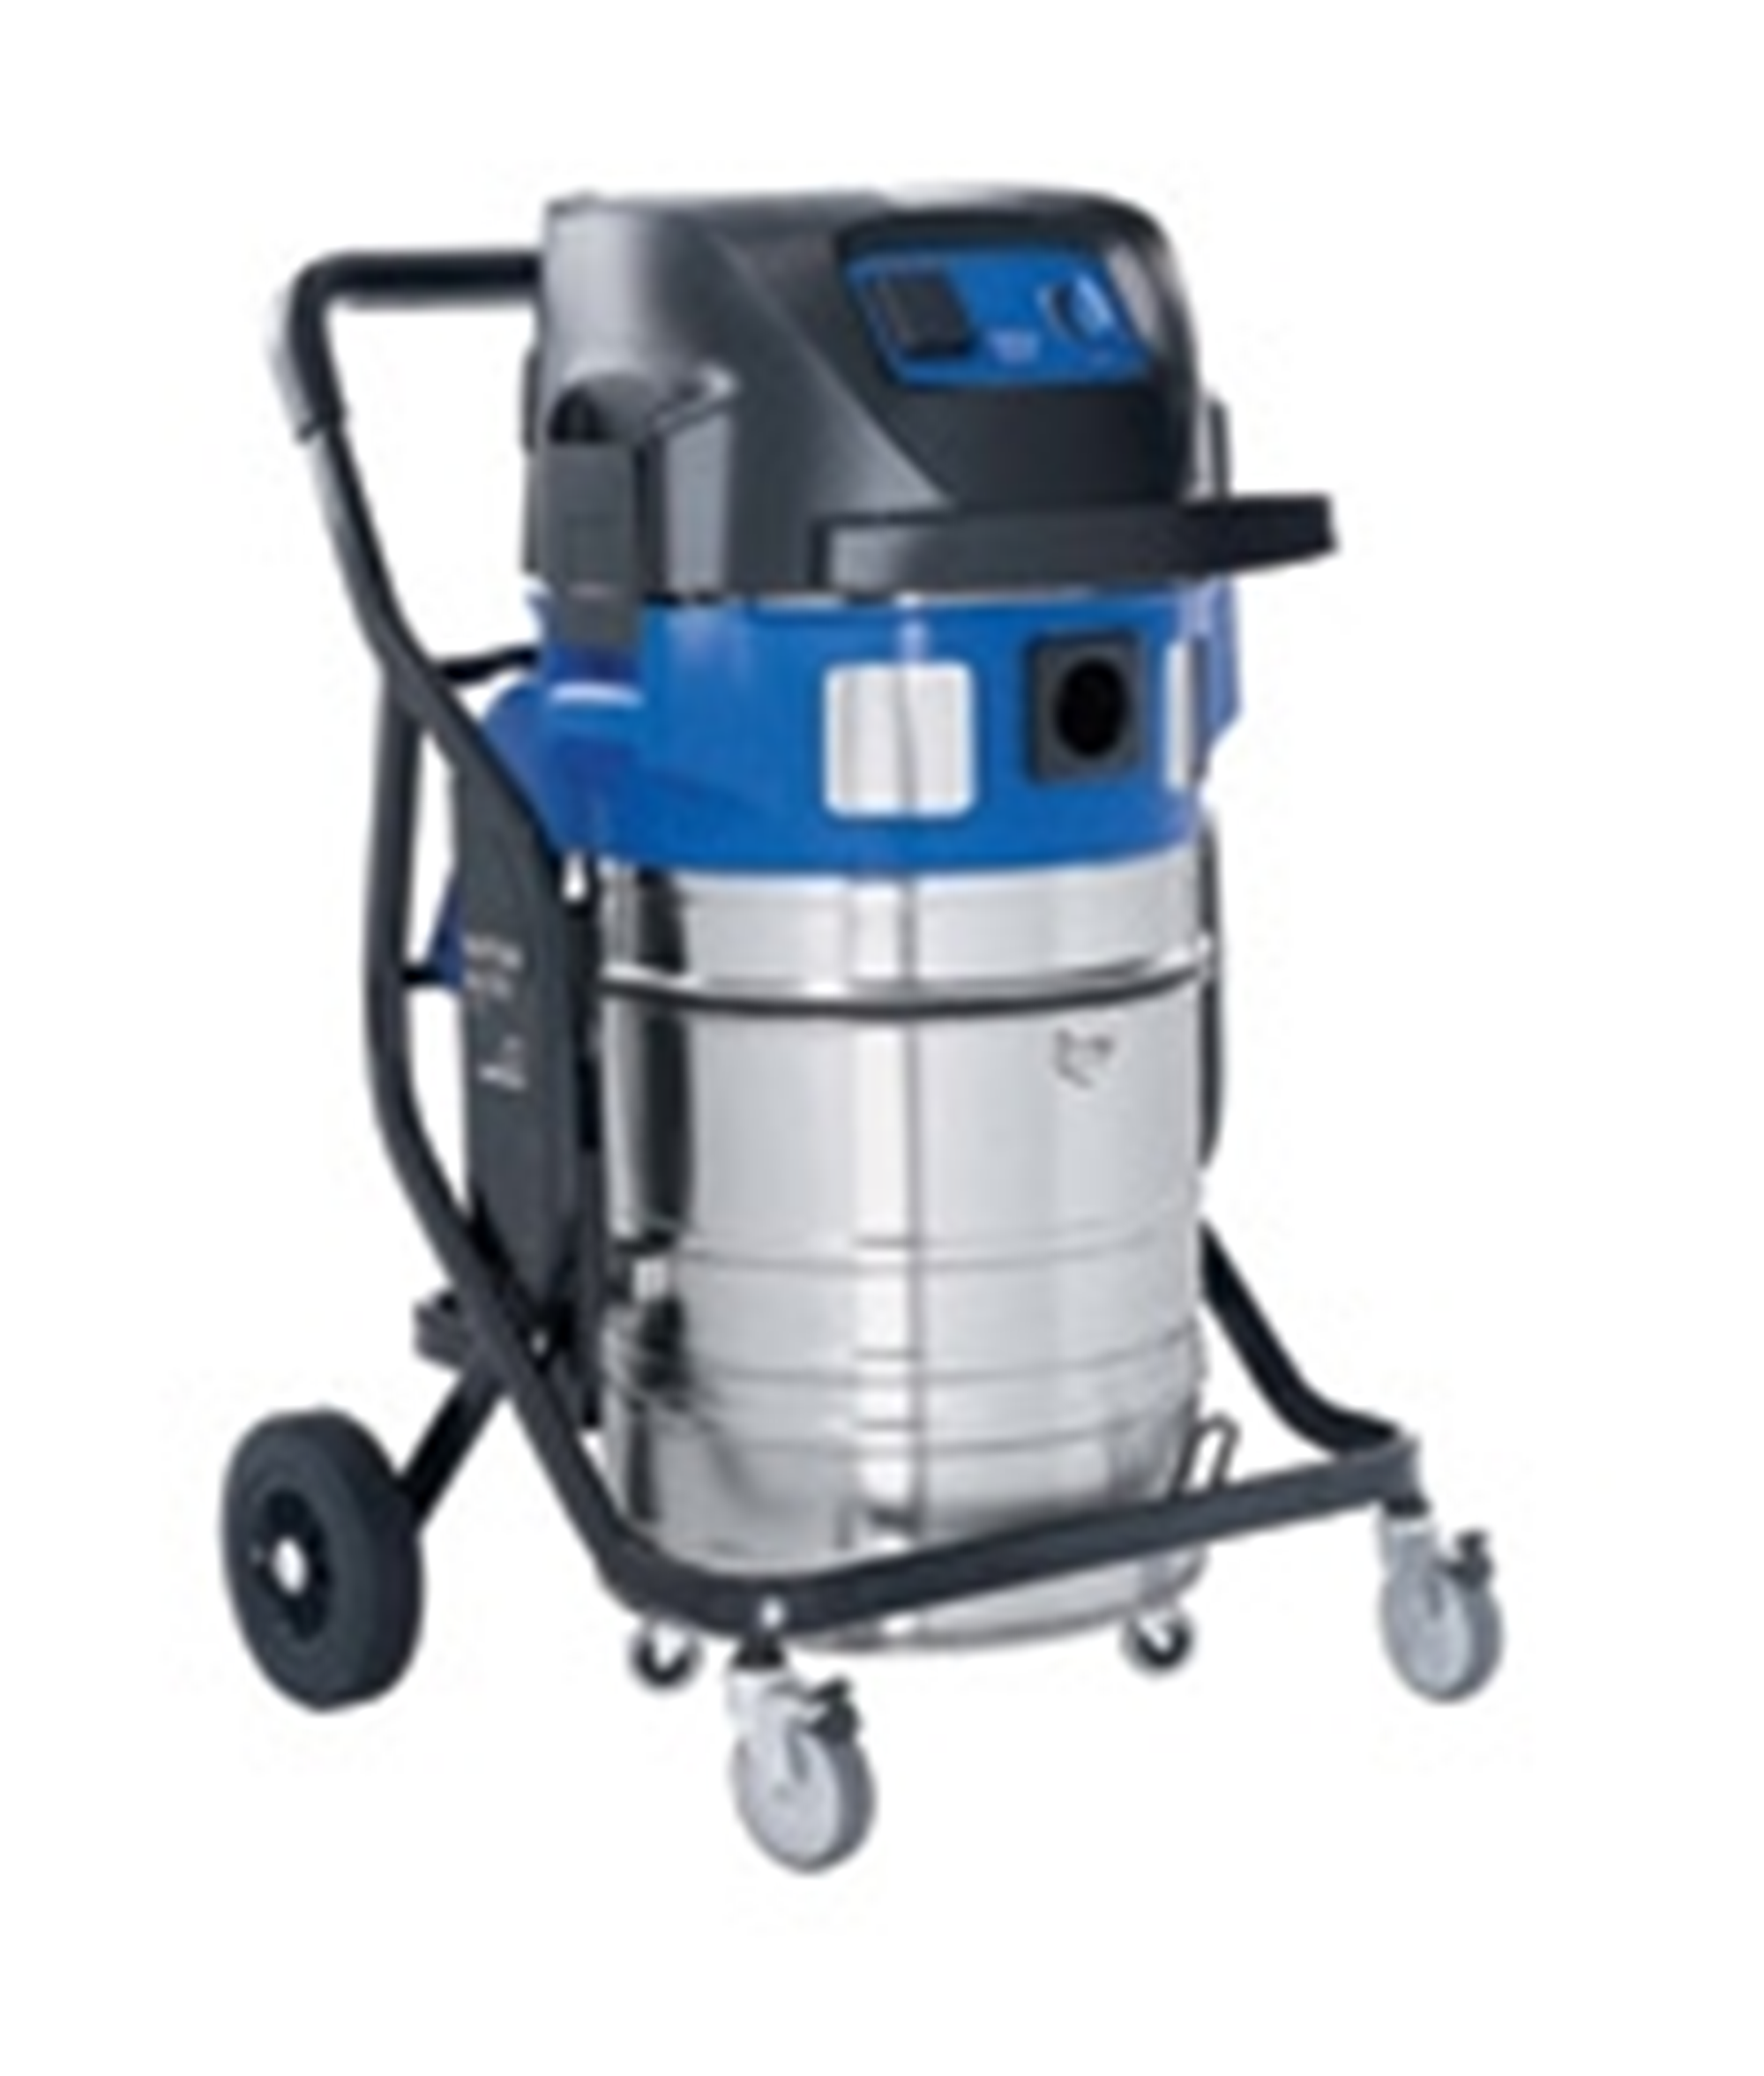 Product, Vacuum cleaners, Industrial vacuum cleaners, Single-phase wet and dry, Nilfisk, ATTIX 965-21 SD XC 220-240V 50/60HZ CH